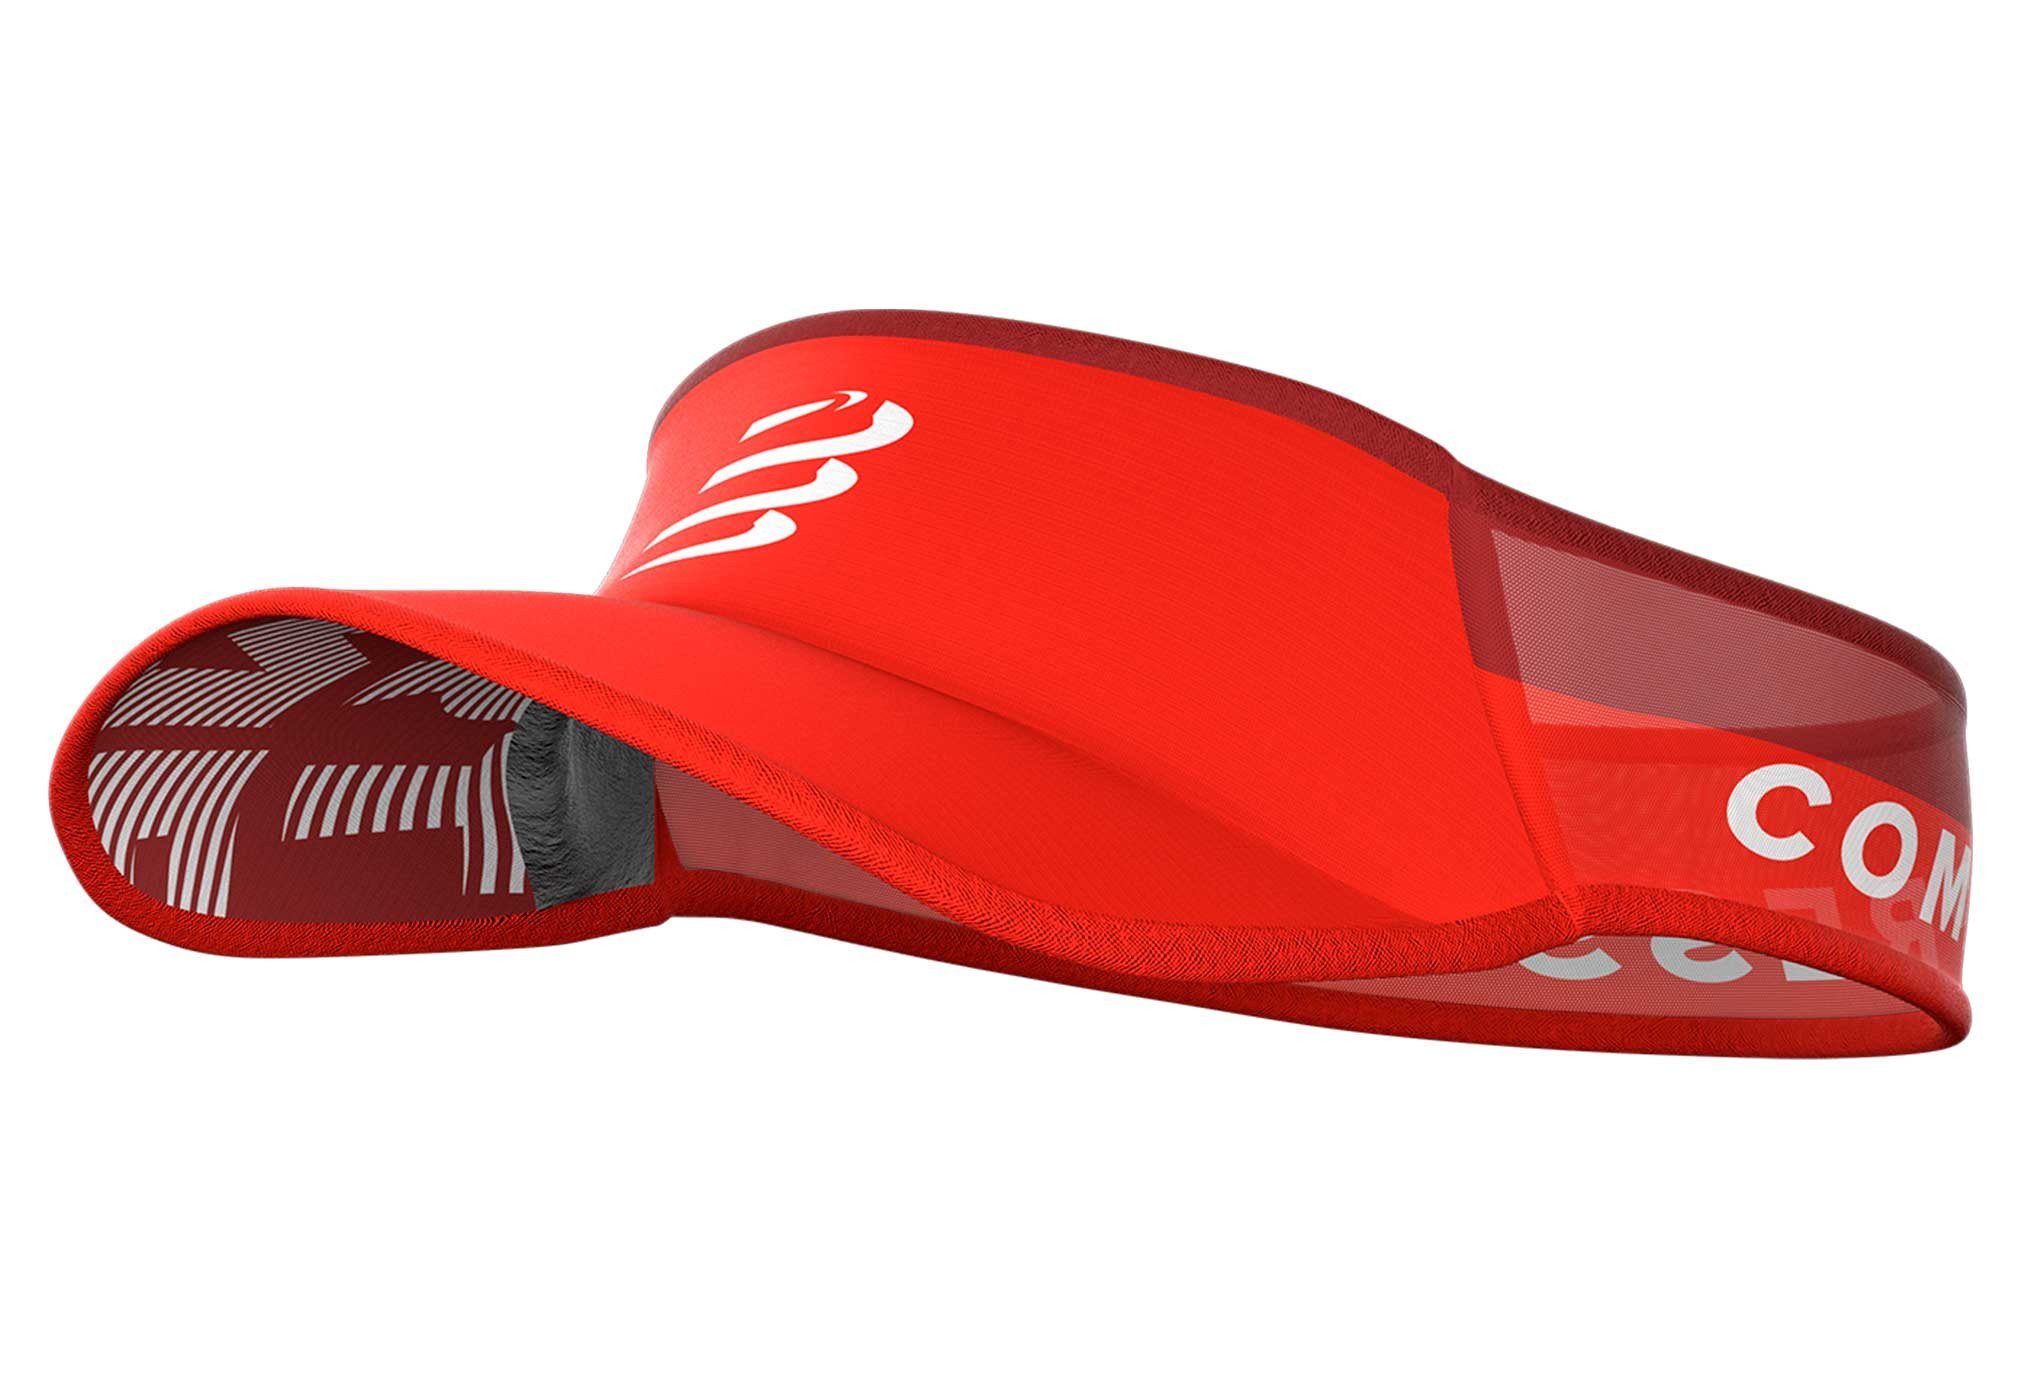 Compressport Visor Ultralight Casquettes / bandeaux